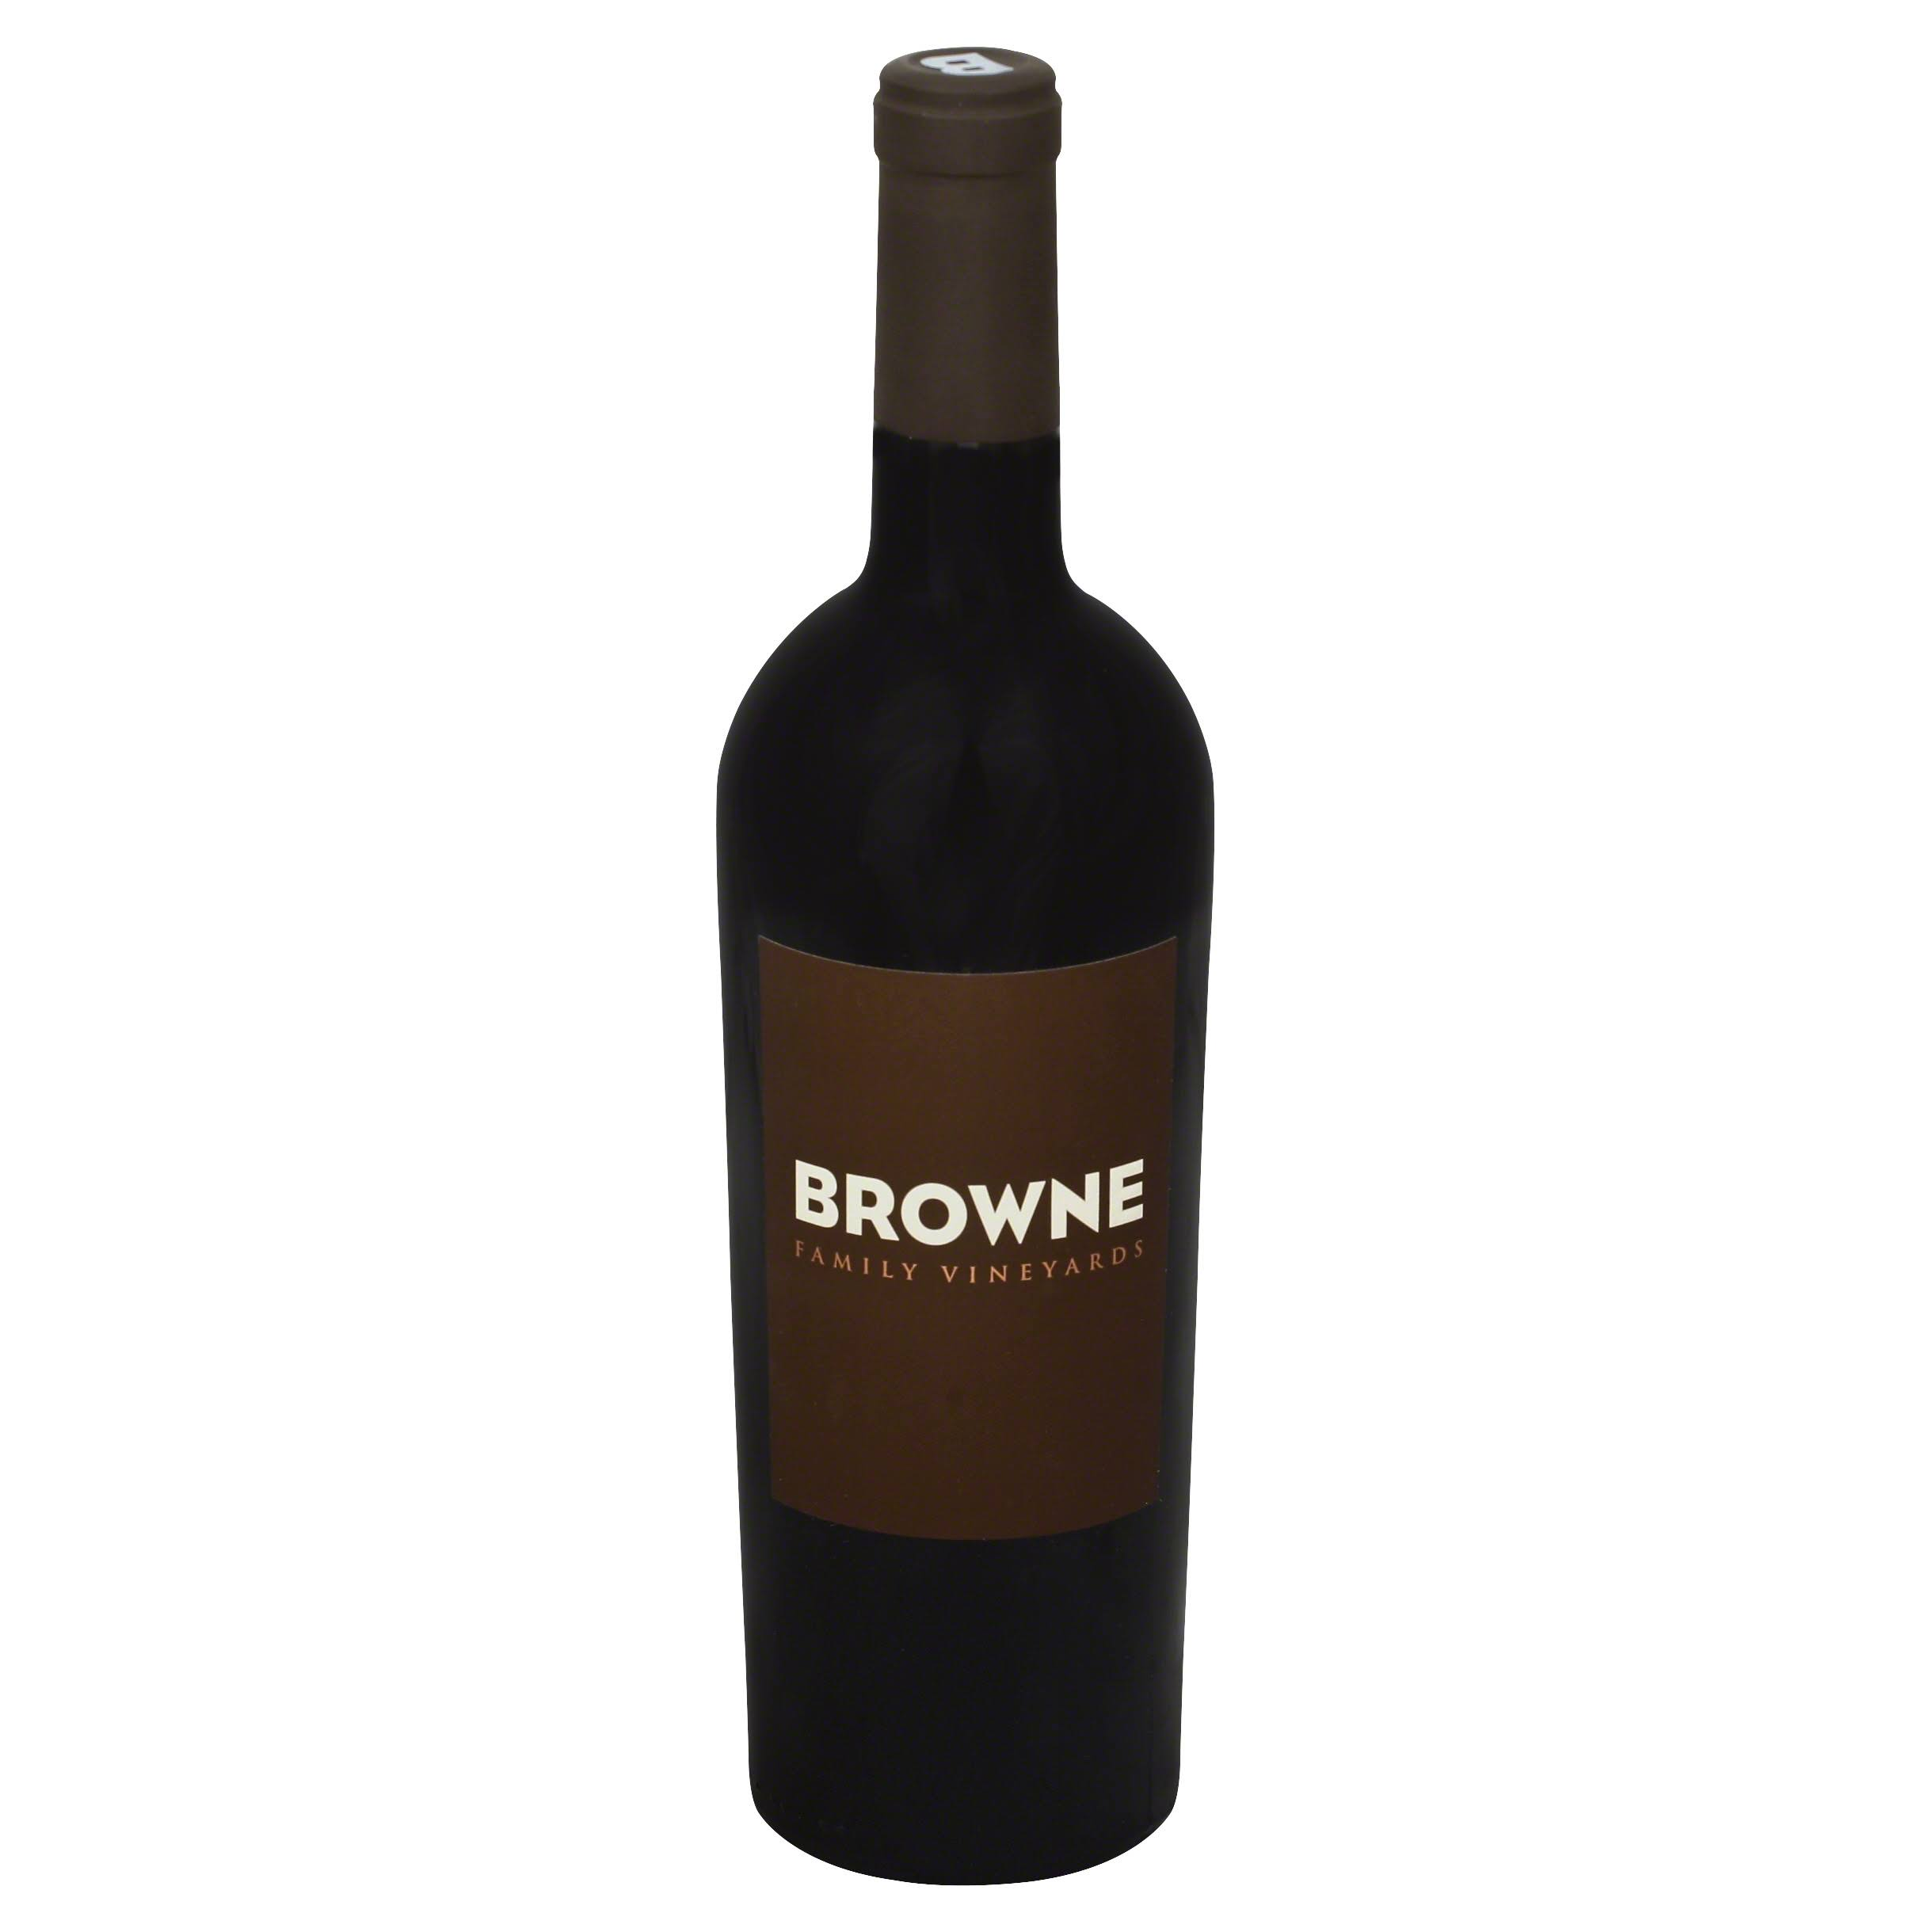 Browne Family Vineyards Cabernet Sauvignon - 2012, Columbia Valley Washington